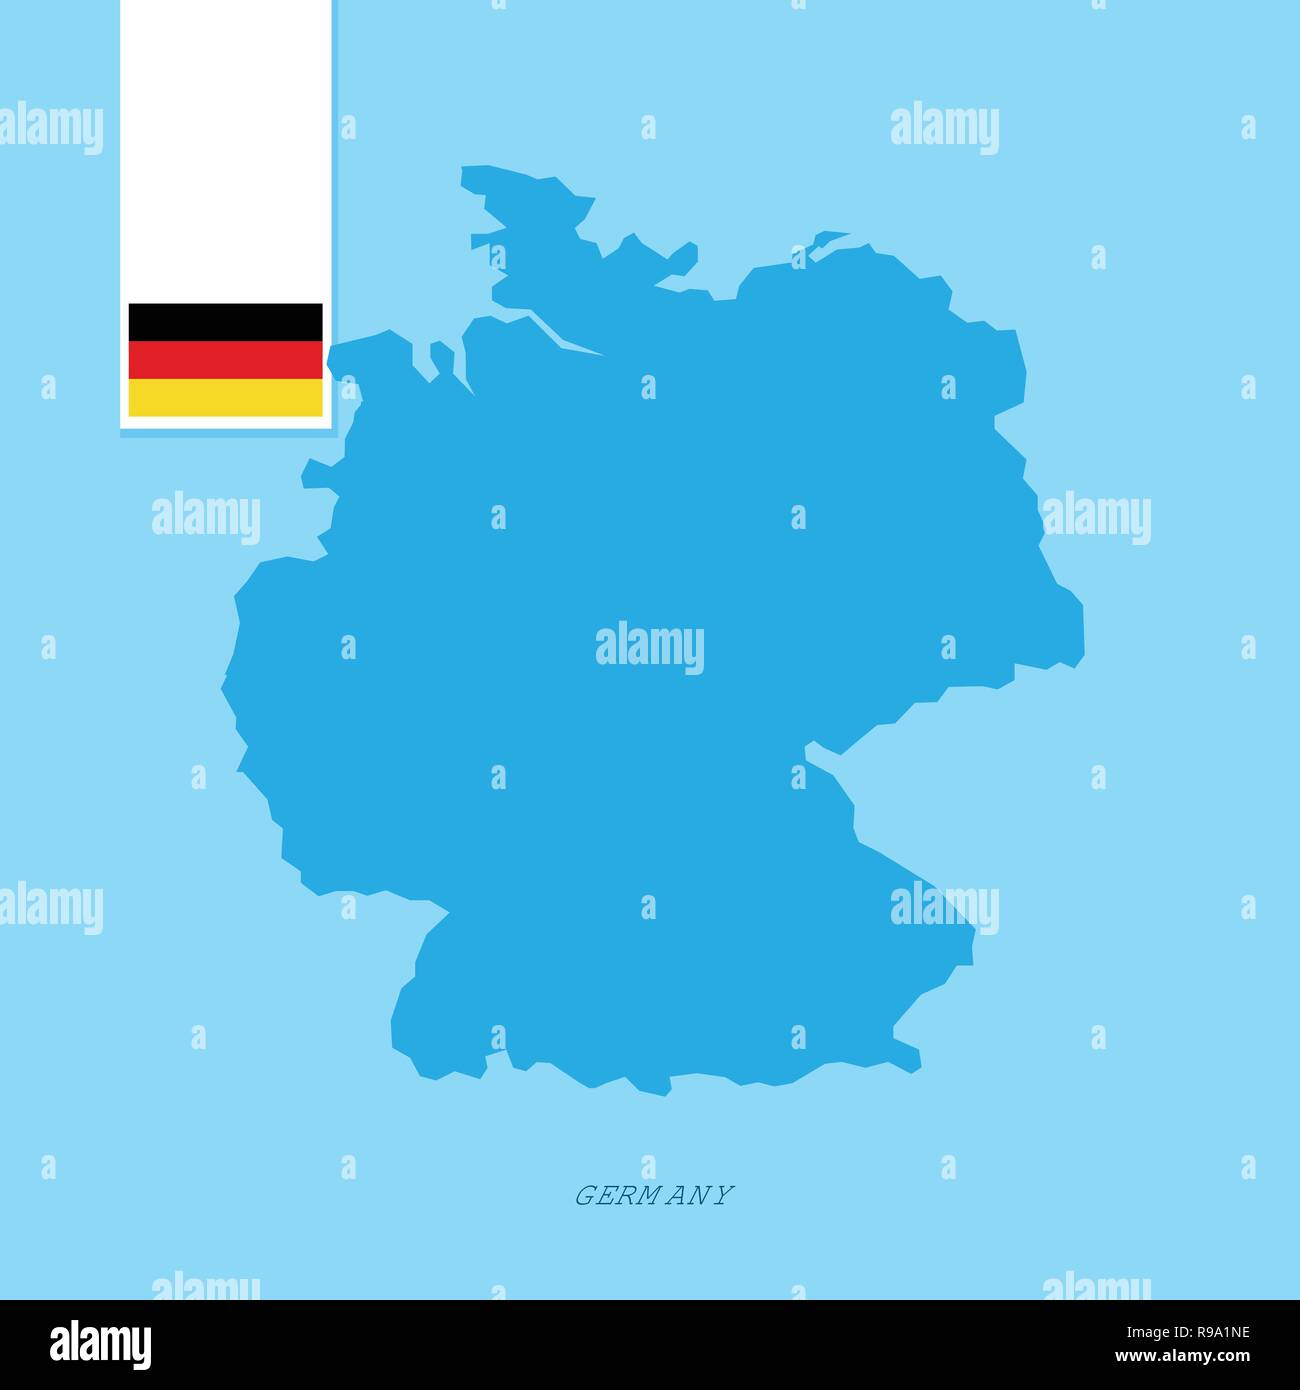 Map Of Germany Over The Years.Germany Country Map With Flag Over Blue Background Stock Vector Art